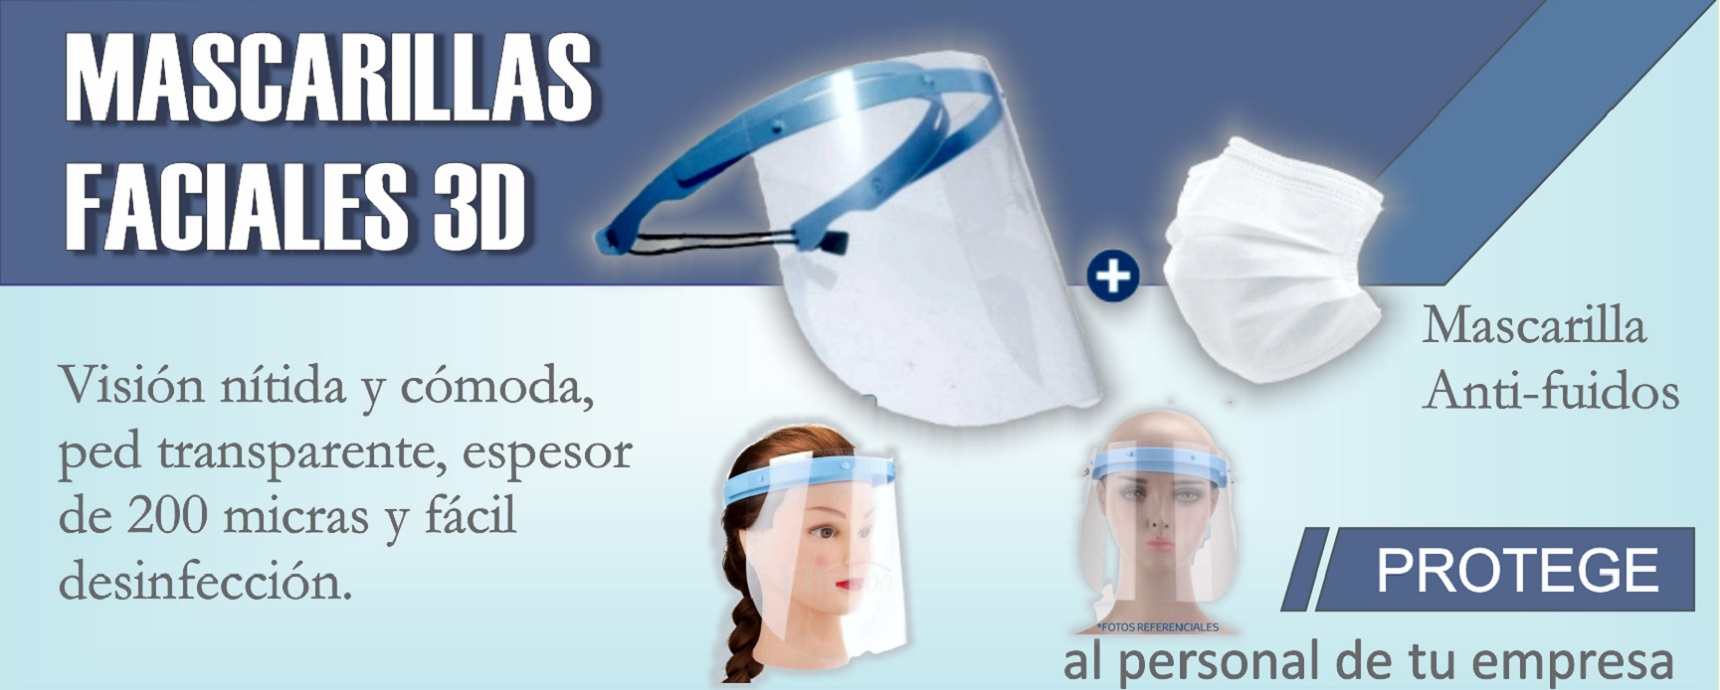 banner mascarillas faciales